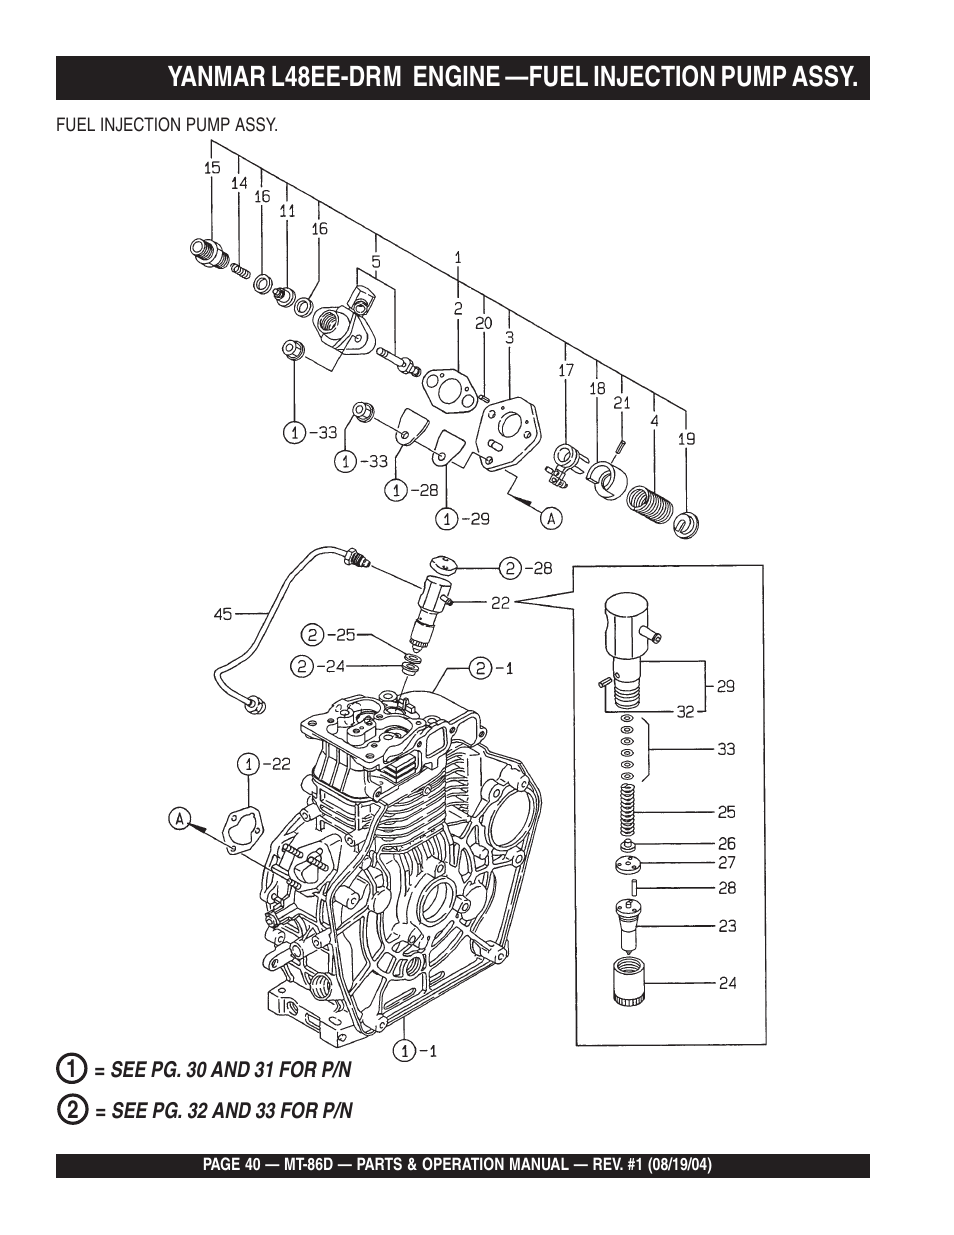 Yanmar l48ee-drm engine —fuel injection pump assy